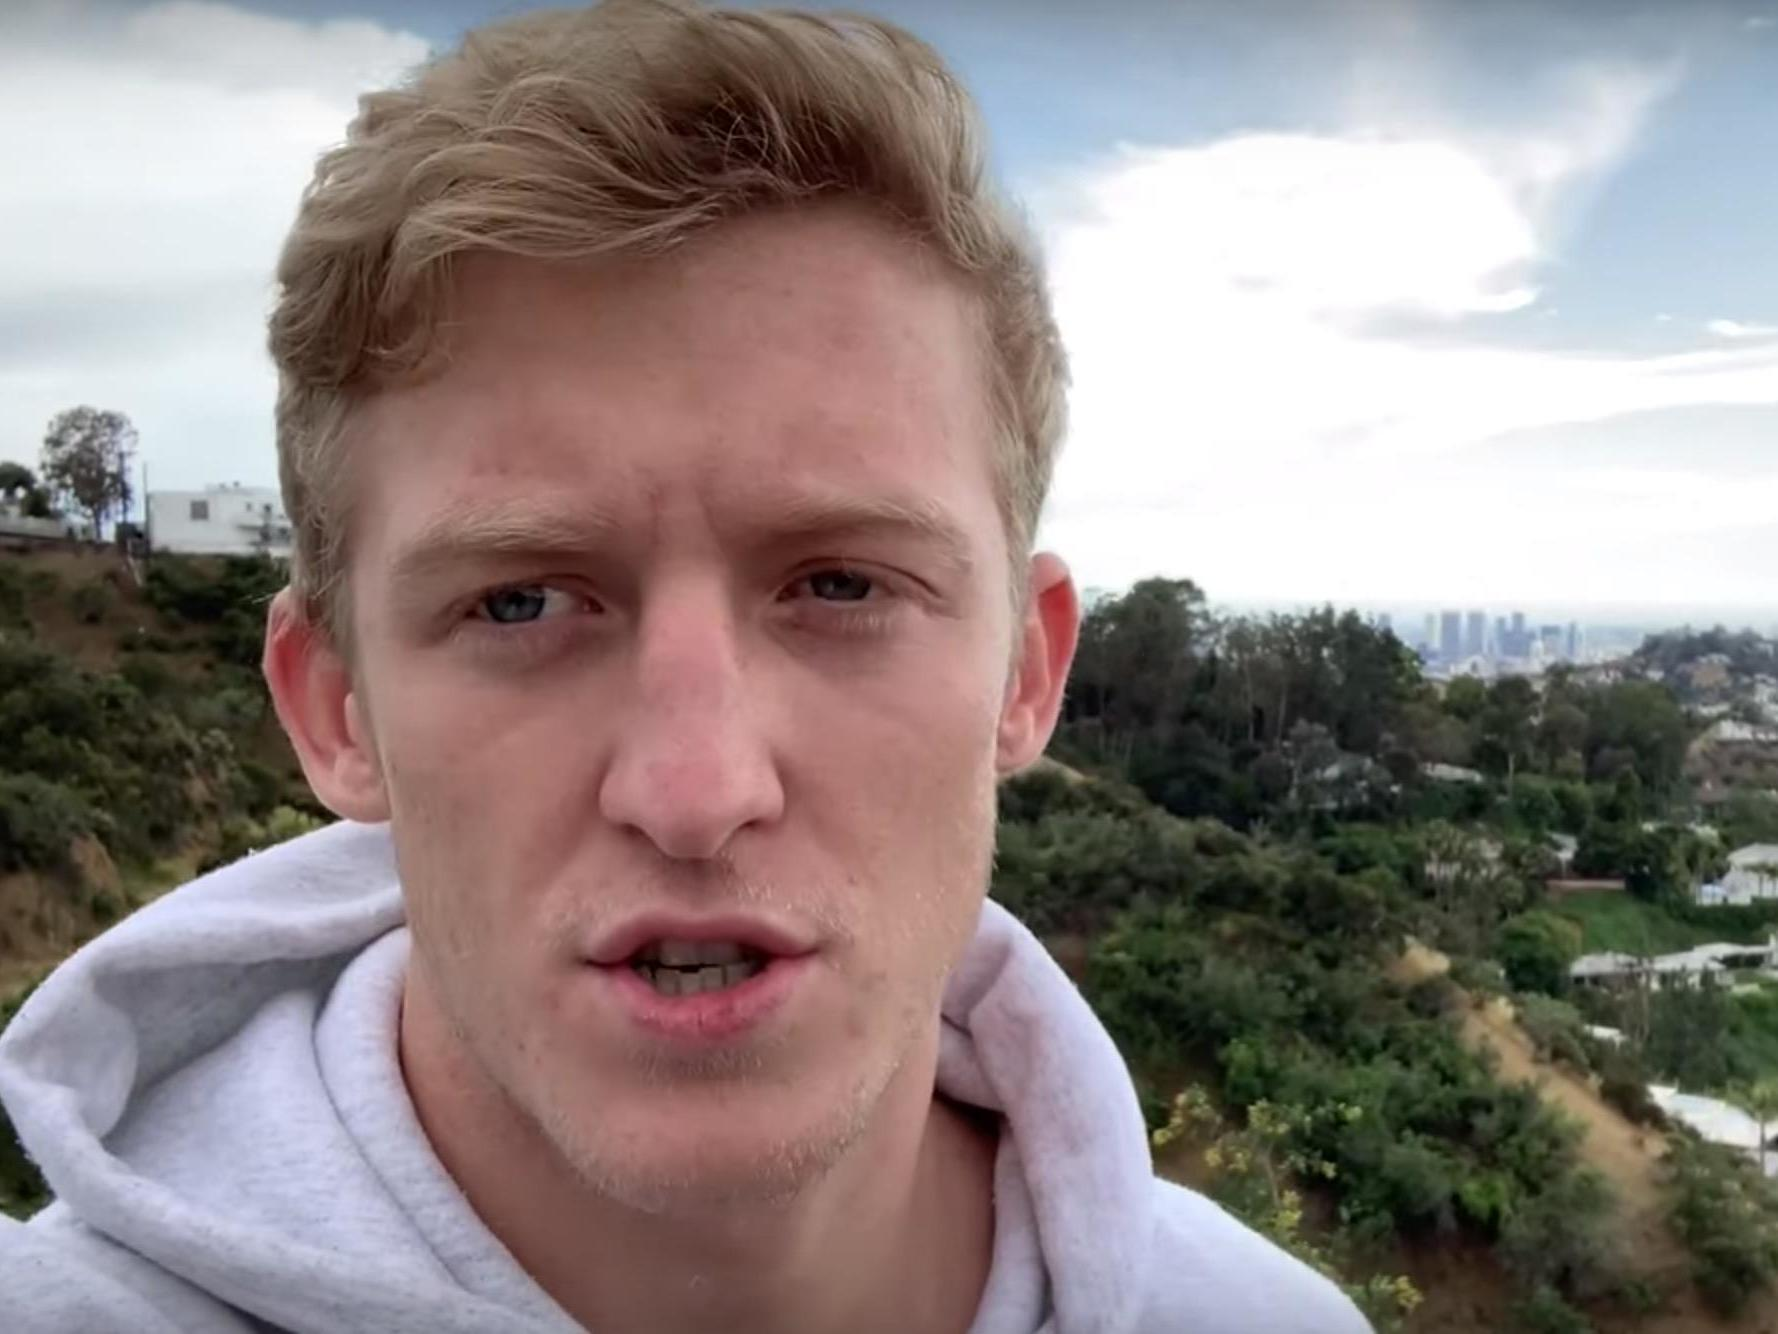 Tfue lawsuit: Why is Fortnite player suing Faze Clan and what is 'release the contract'?